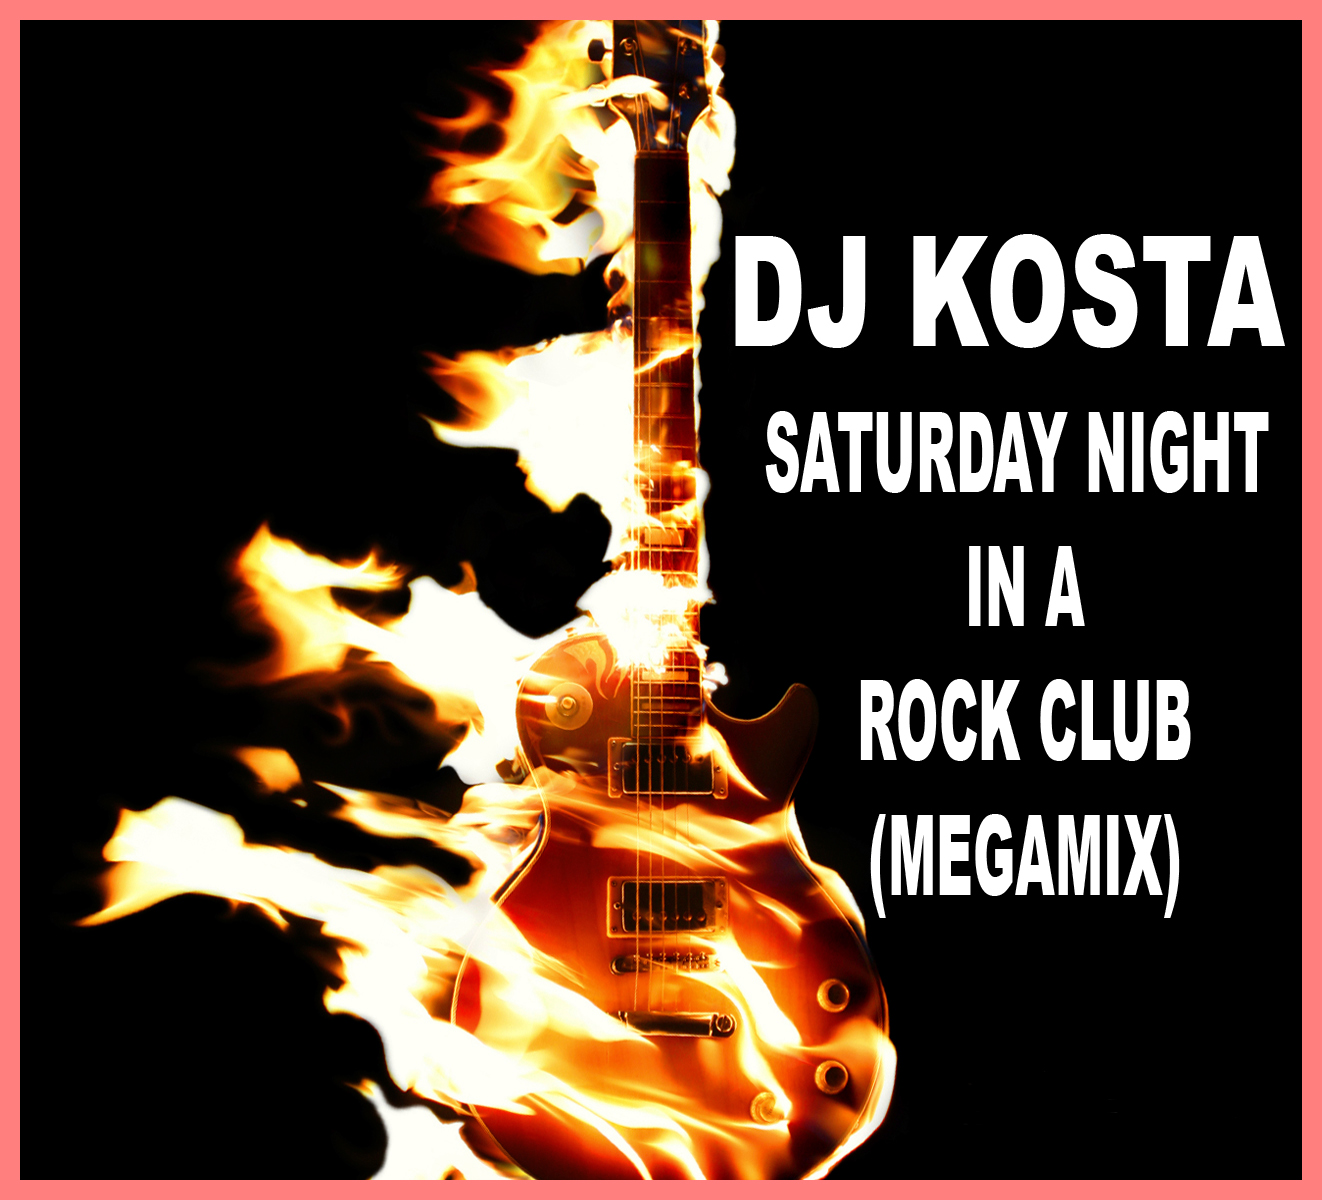 DJ Kosta - Saturday Night in a Rock Club Megamix 2010